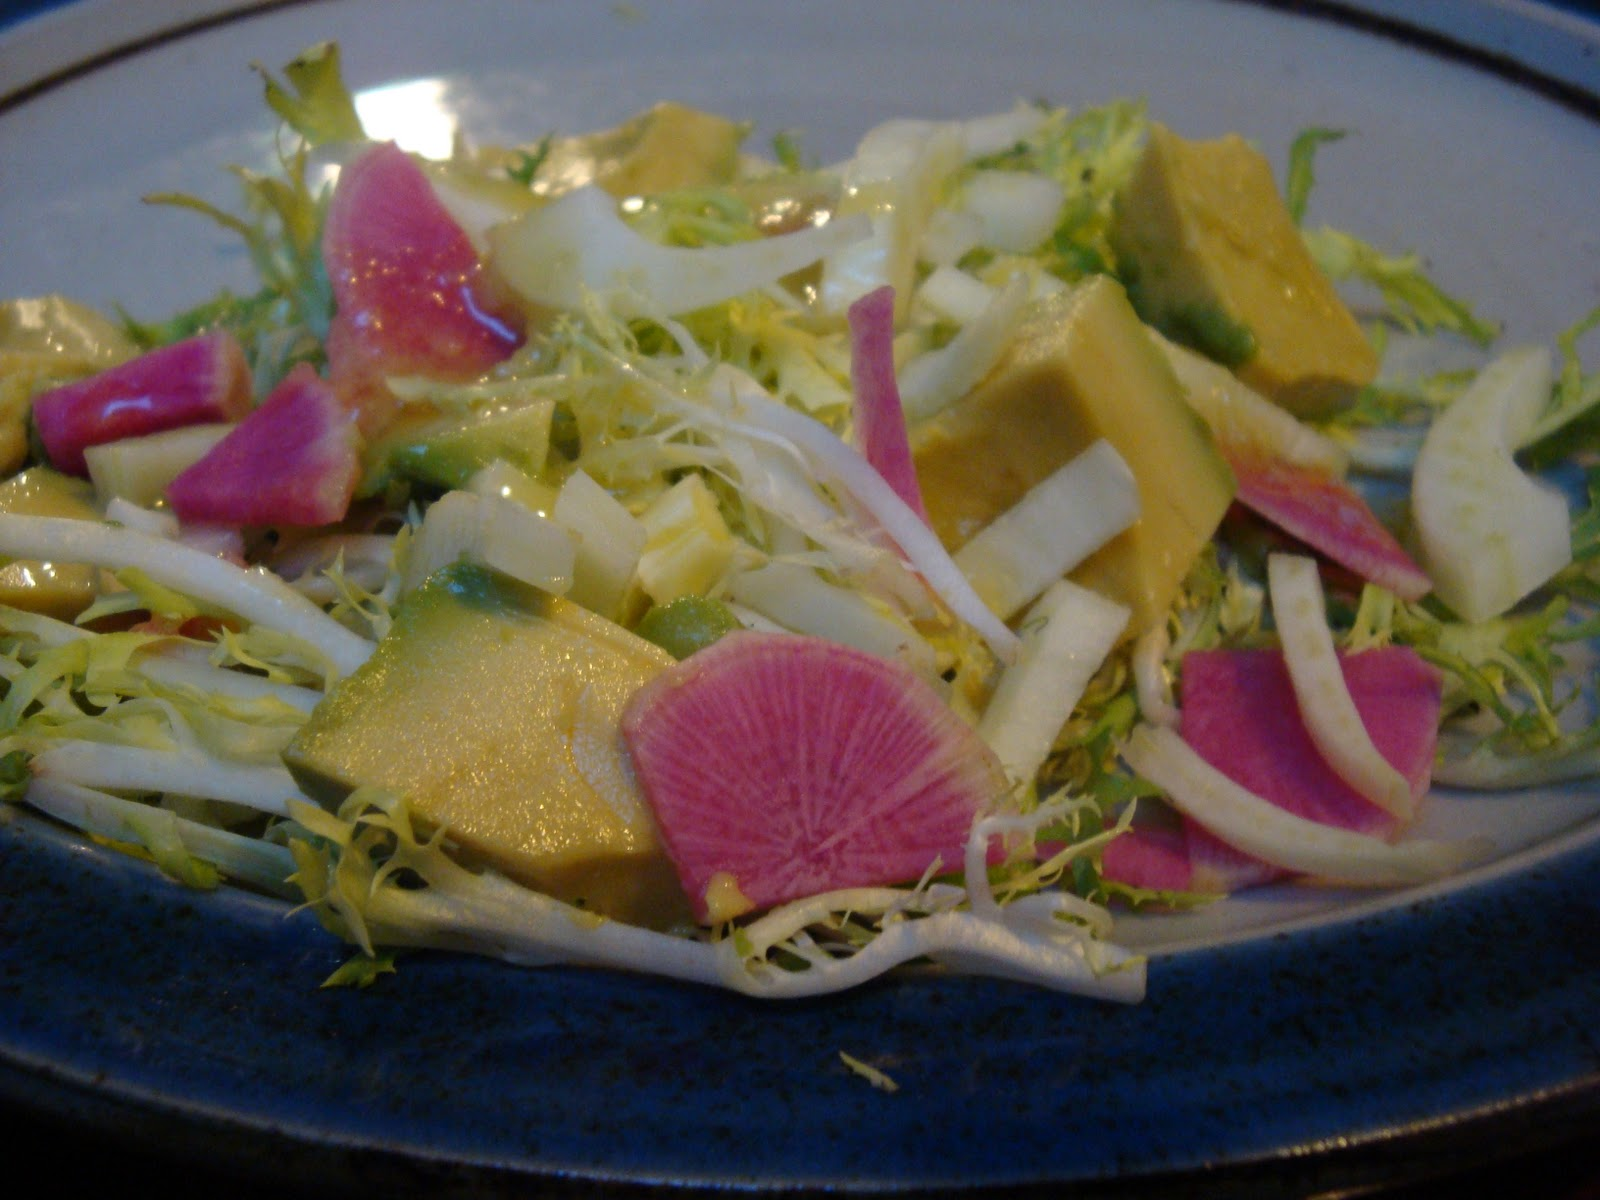 Stealth Cooking: Watermelon Radish, Avocado and Fennel Salad